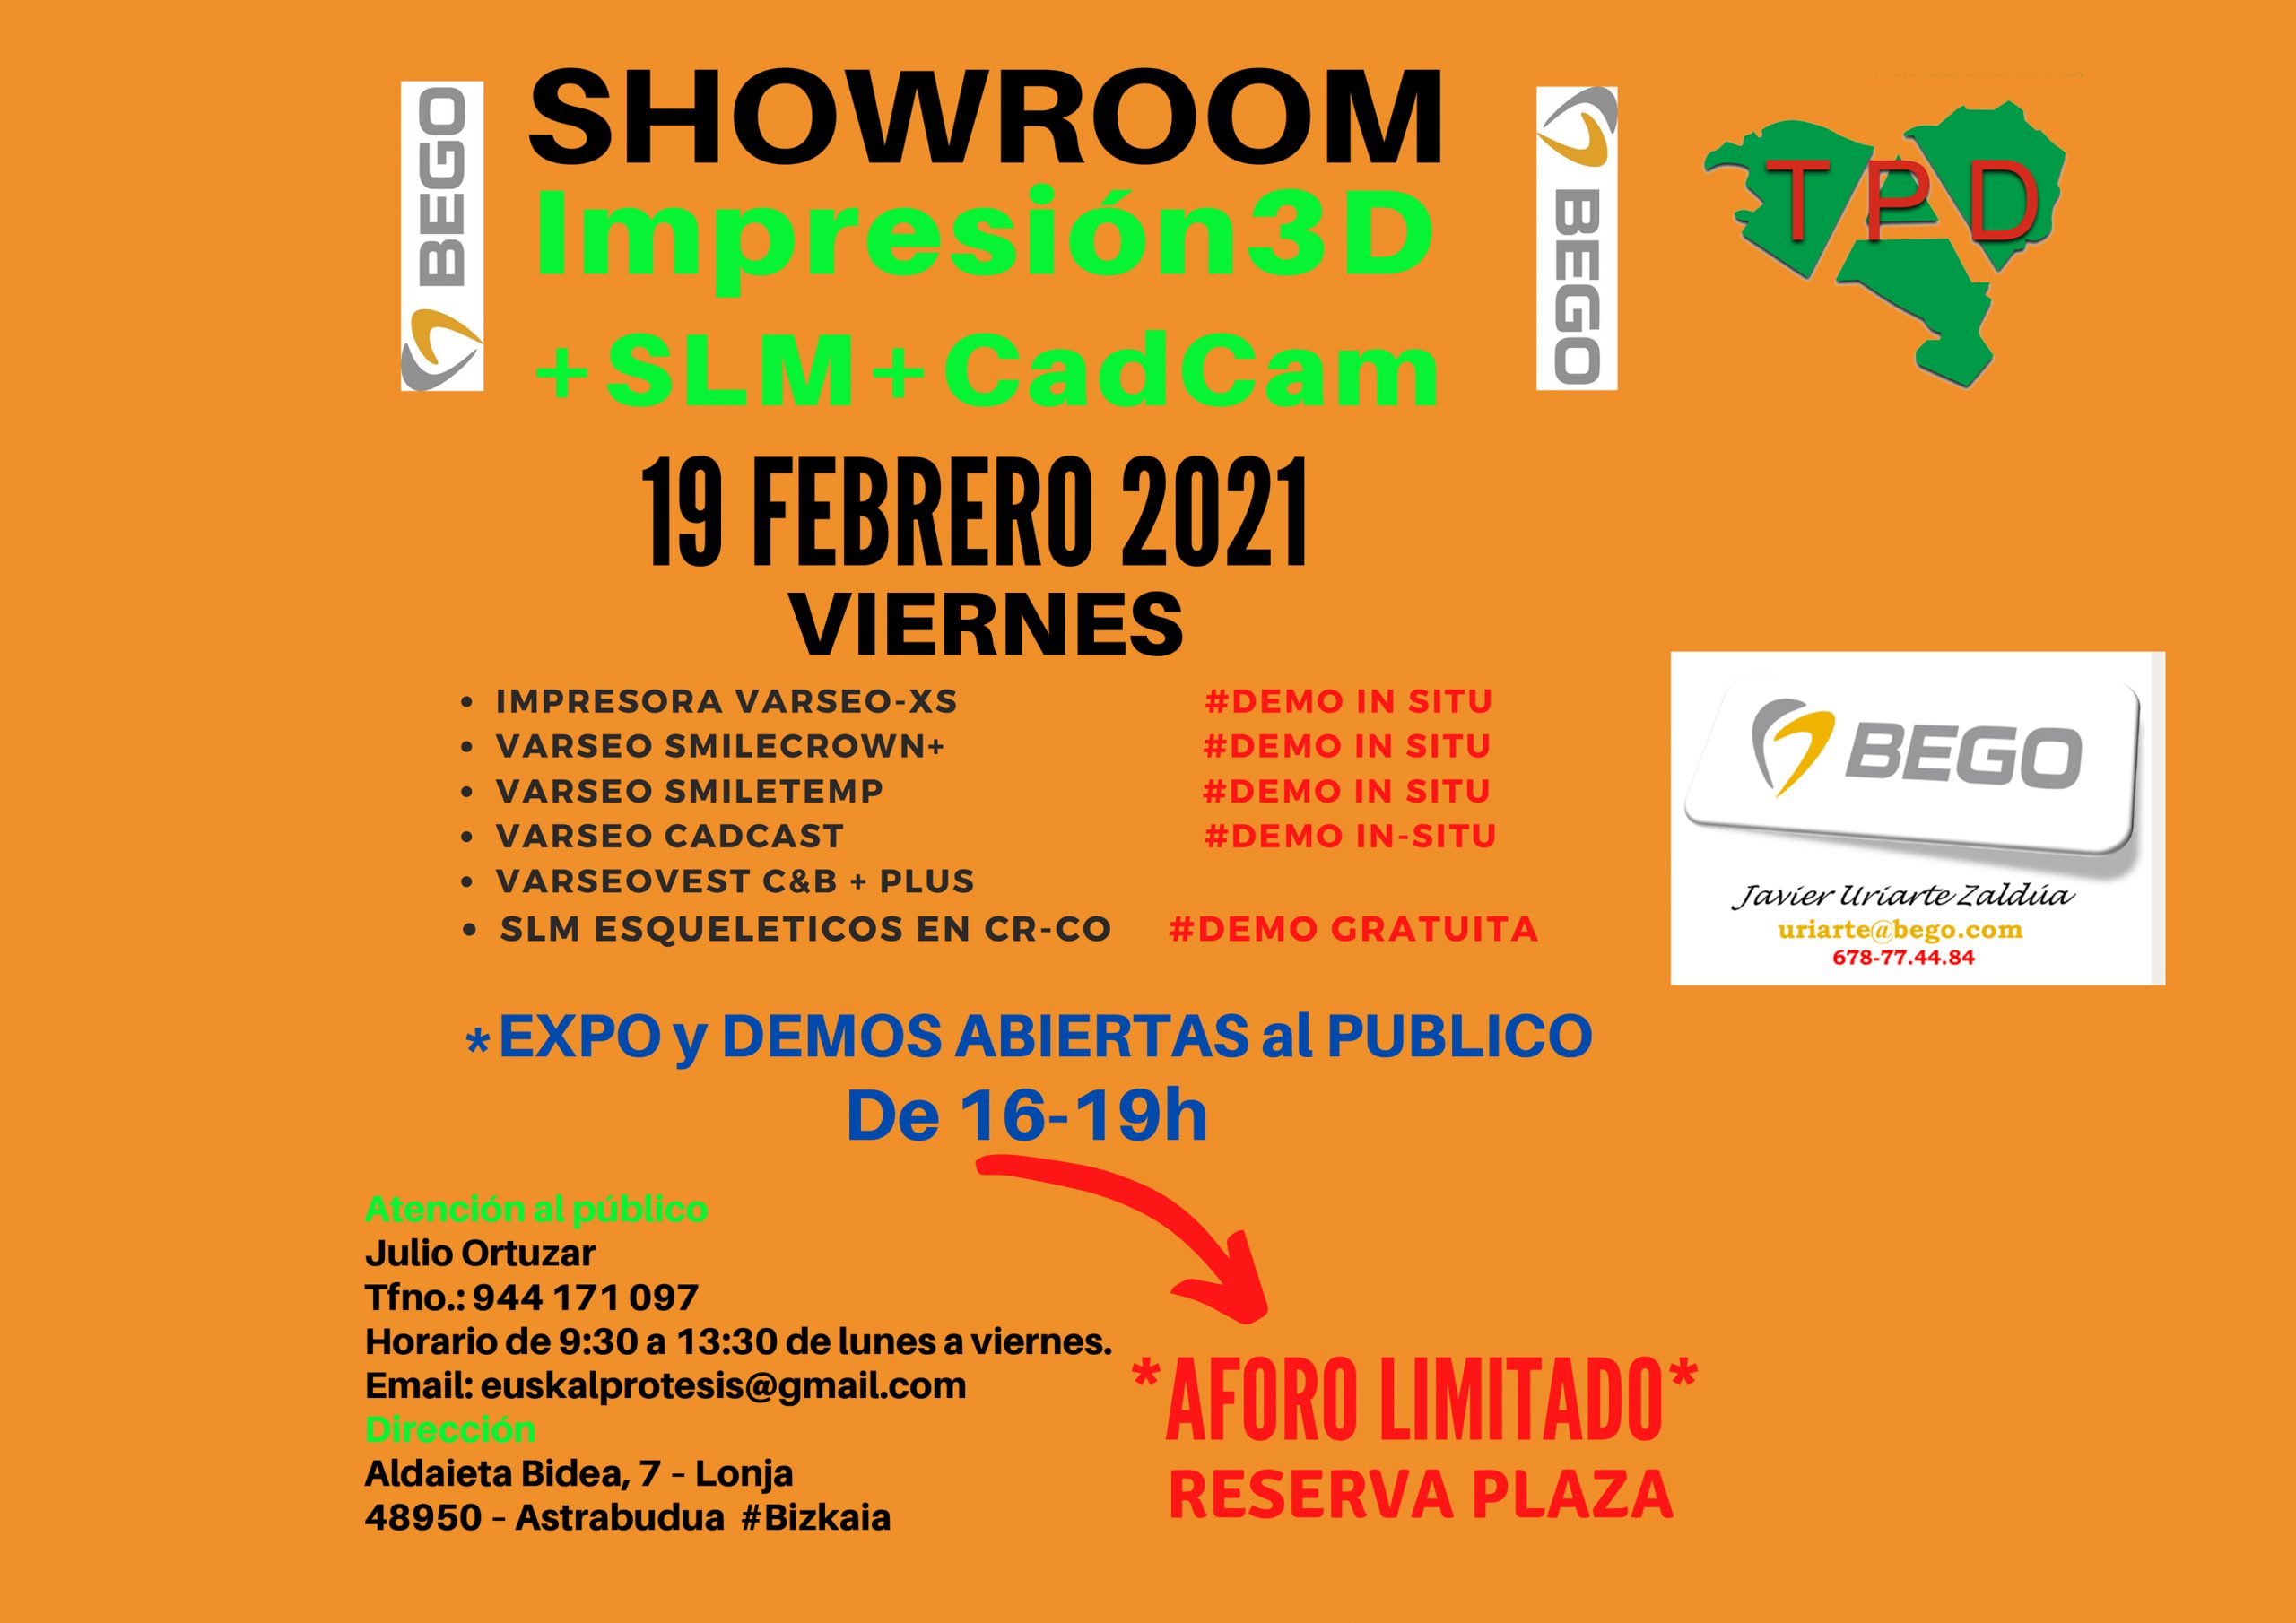 Showroom BEGO